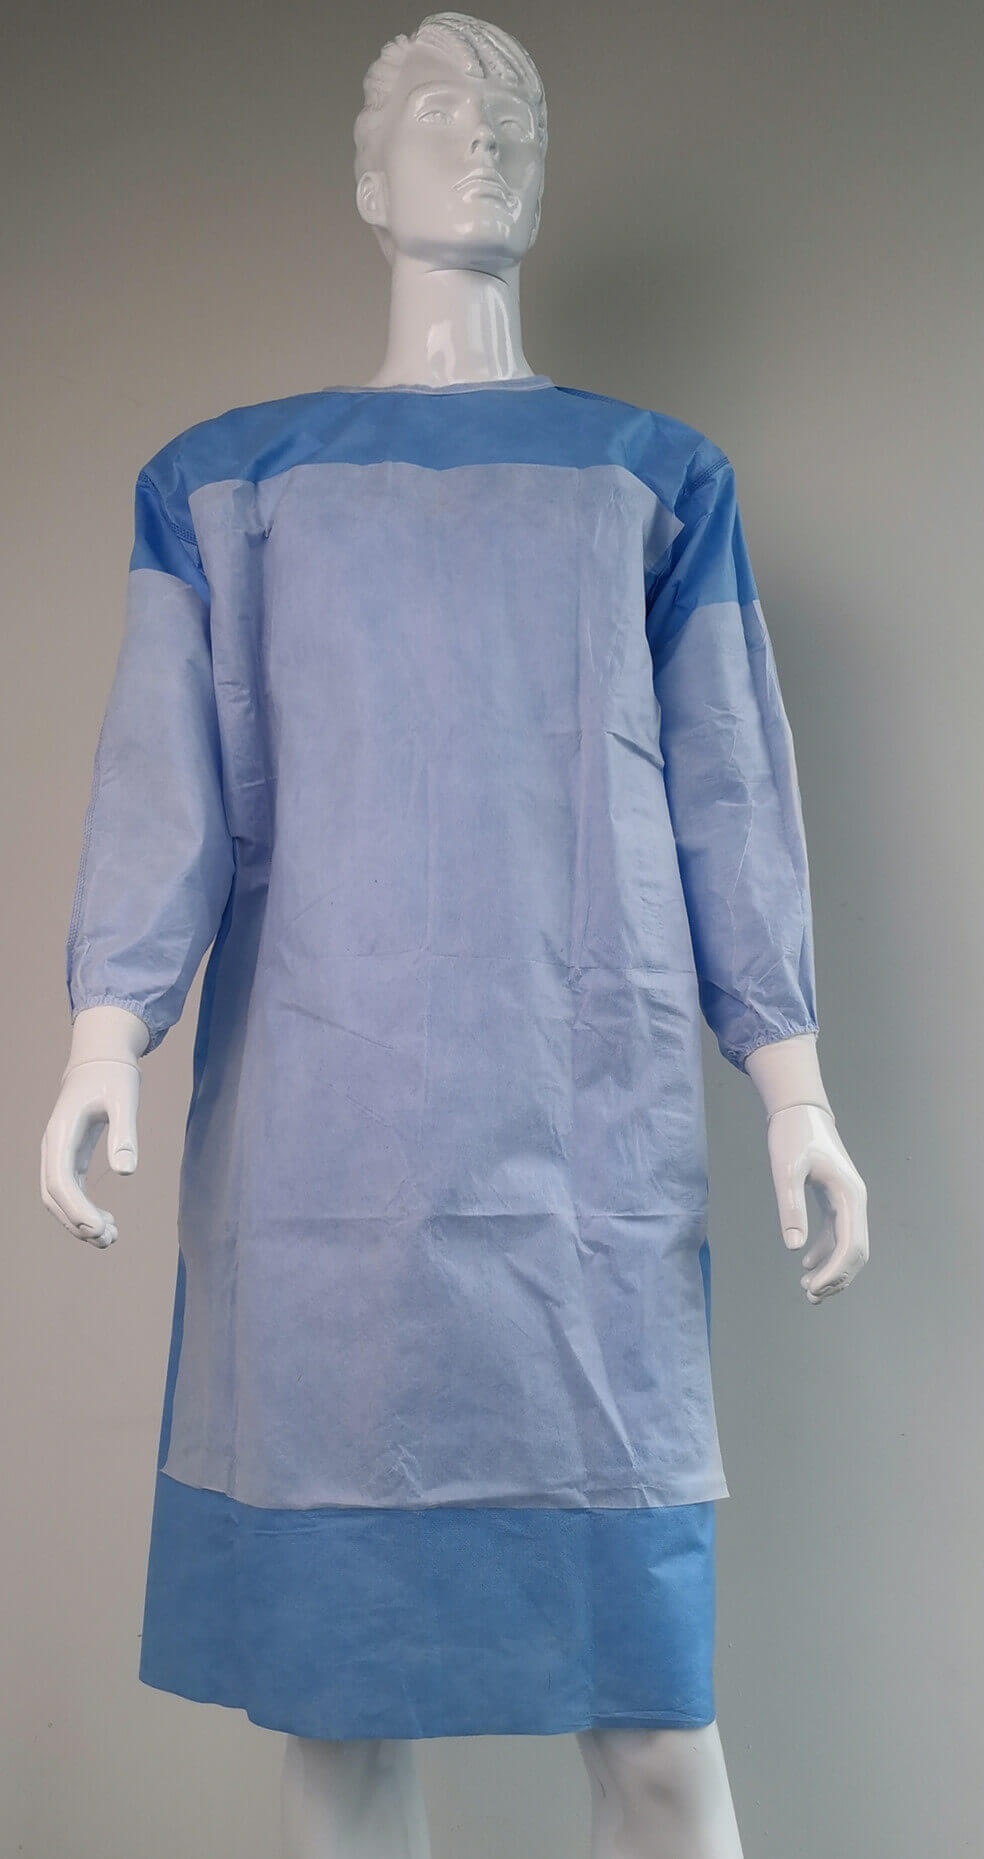 reinforced gown with eo sterilization